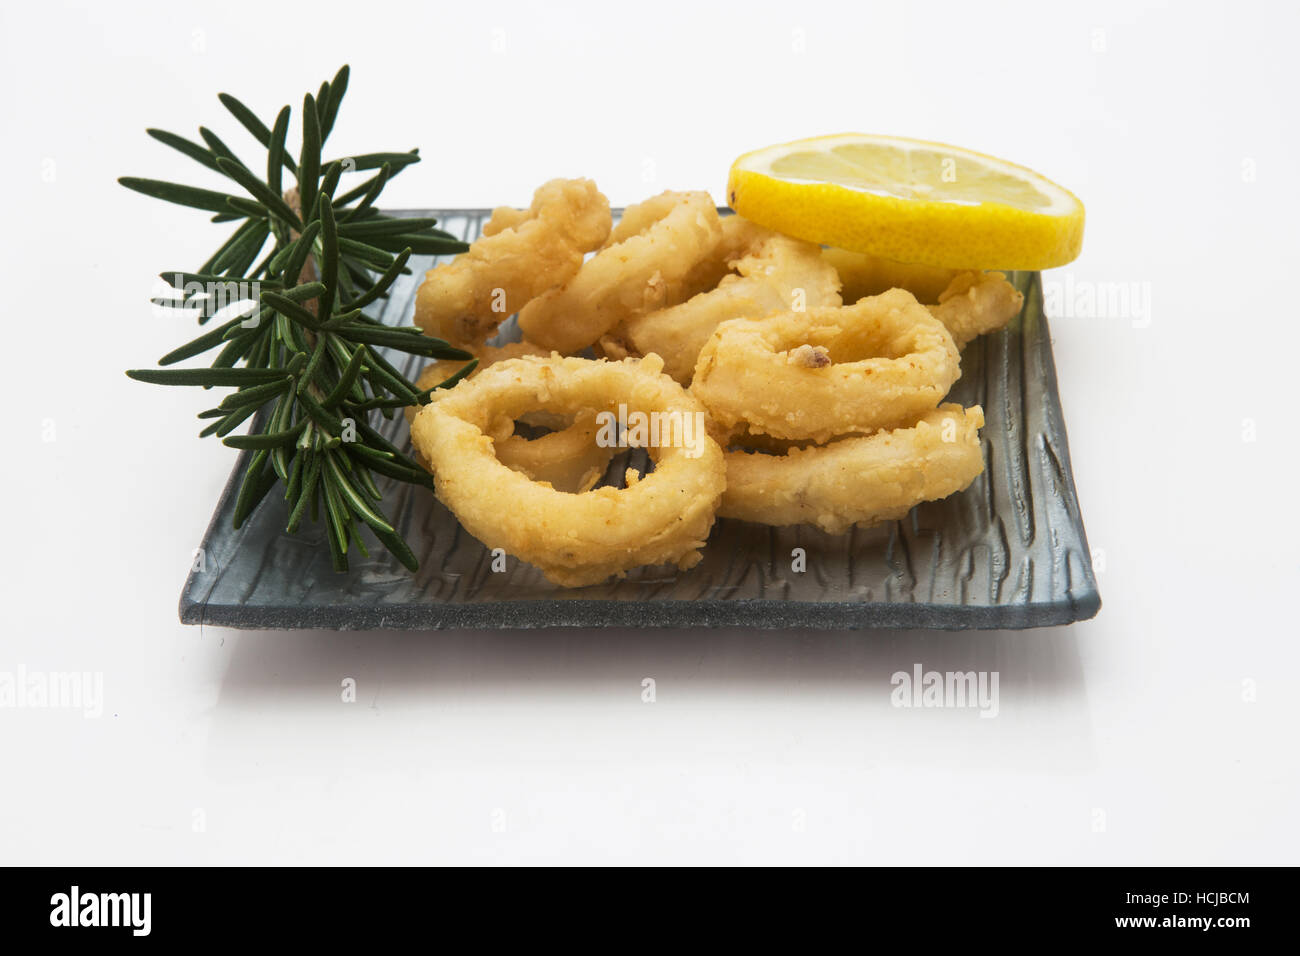 Calamari ring OR Fried squid ring with lemon and sauce - Italian food style isolated on white - Stock Image